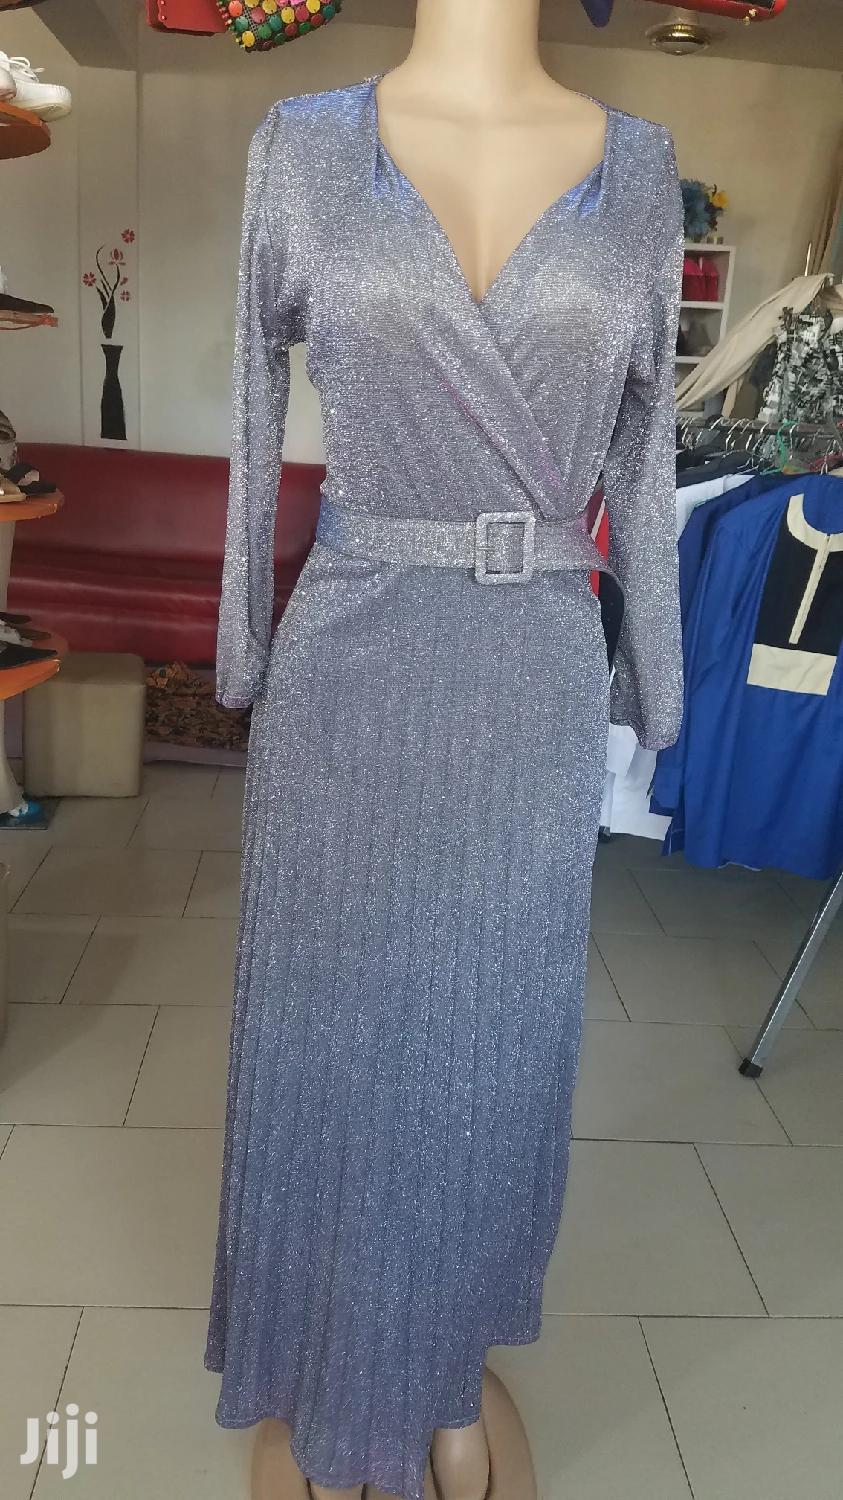 Ladies Dress | Clothing for sale in Awutu Senya East Municipal, Central Region, Ghana